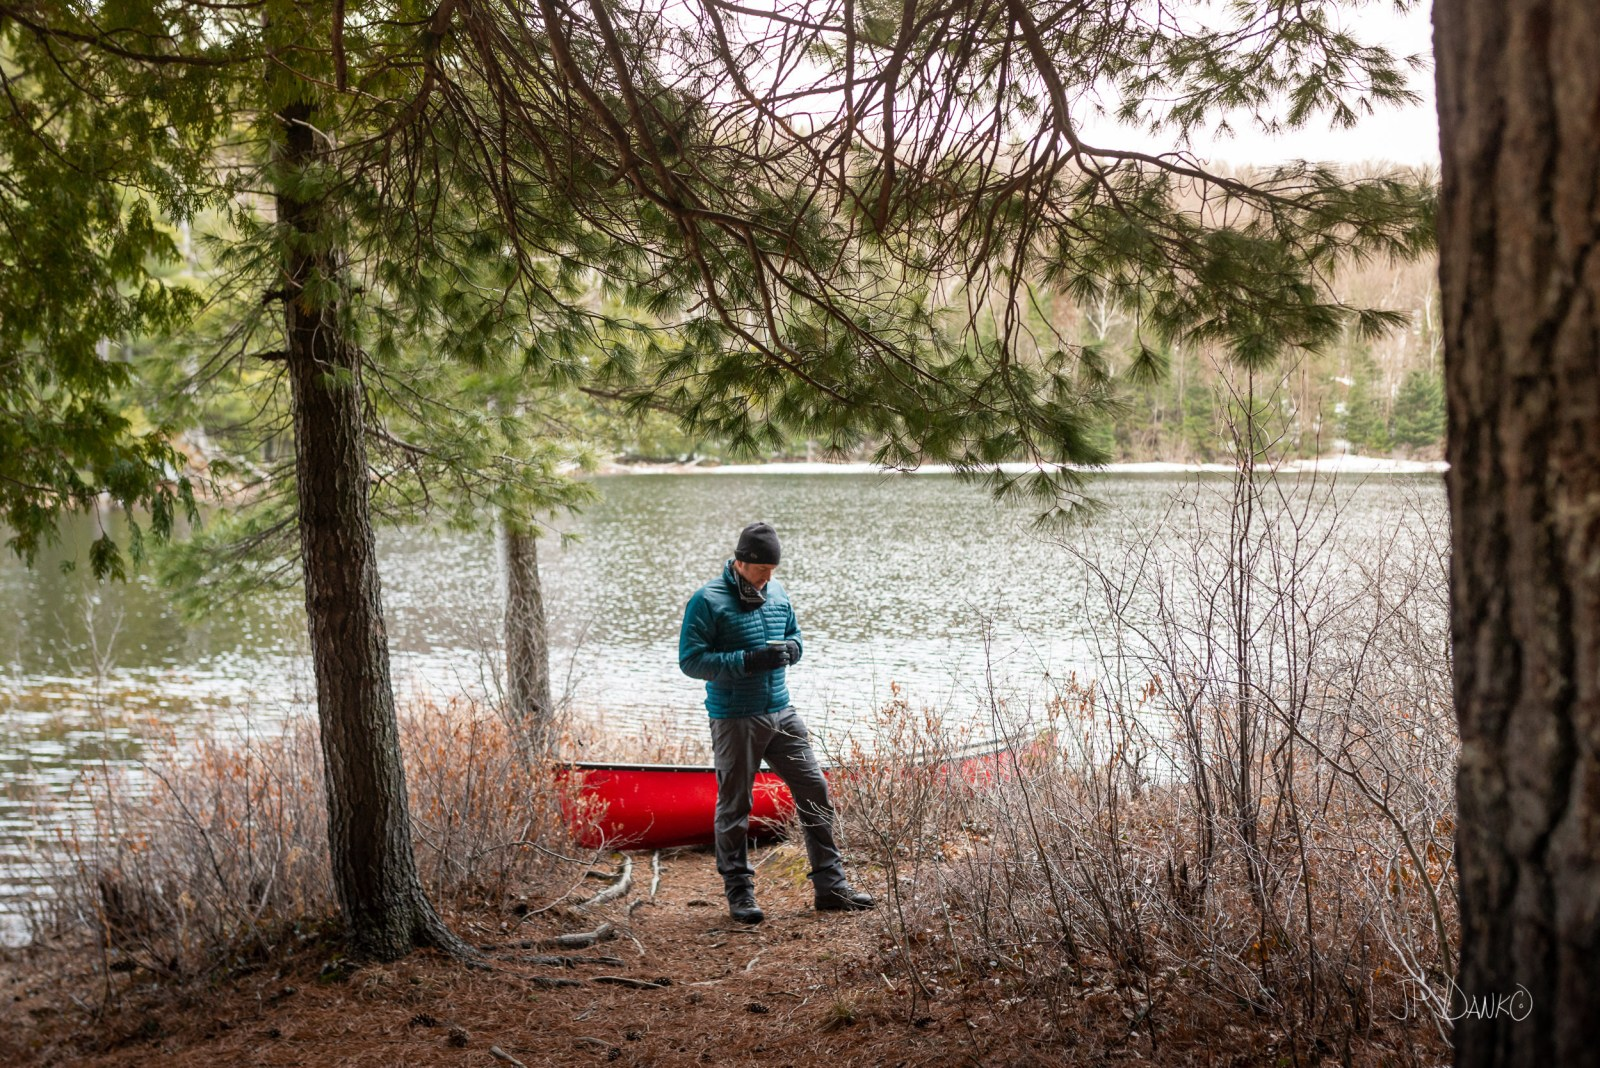 Man Holding Morning Coffee Spring Red Canoe Trip Backcountry Wil